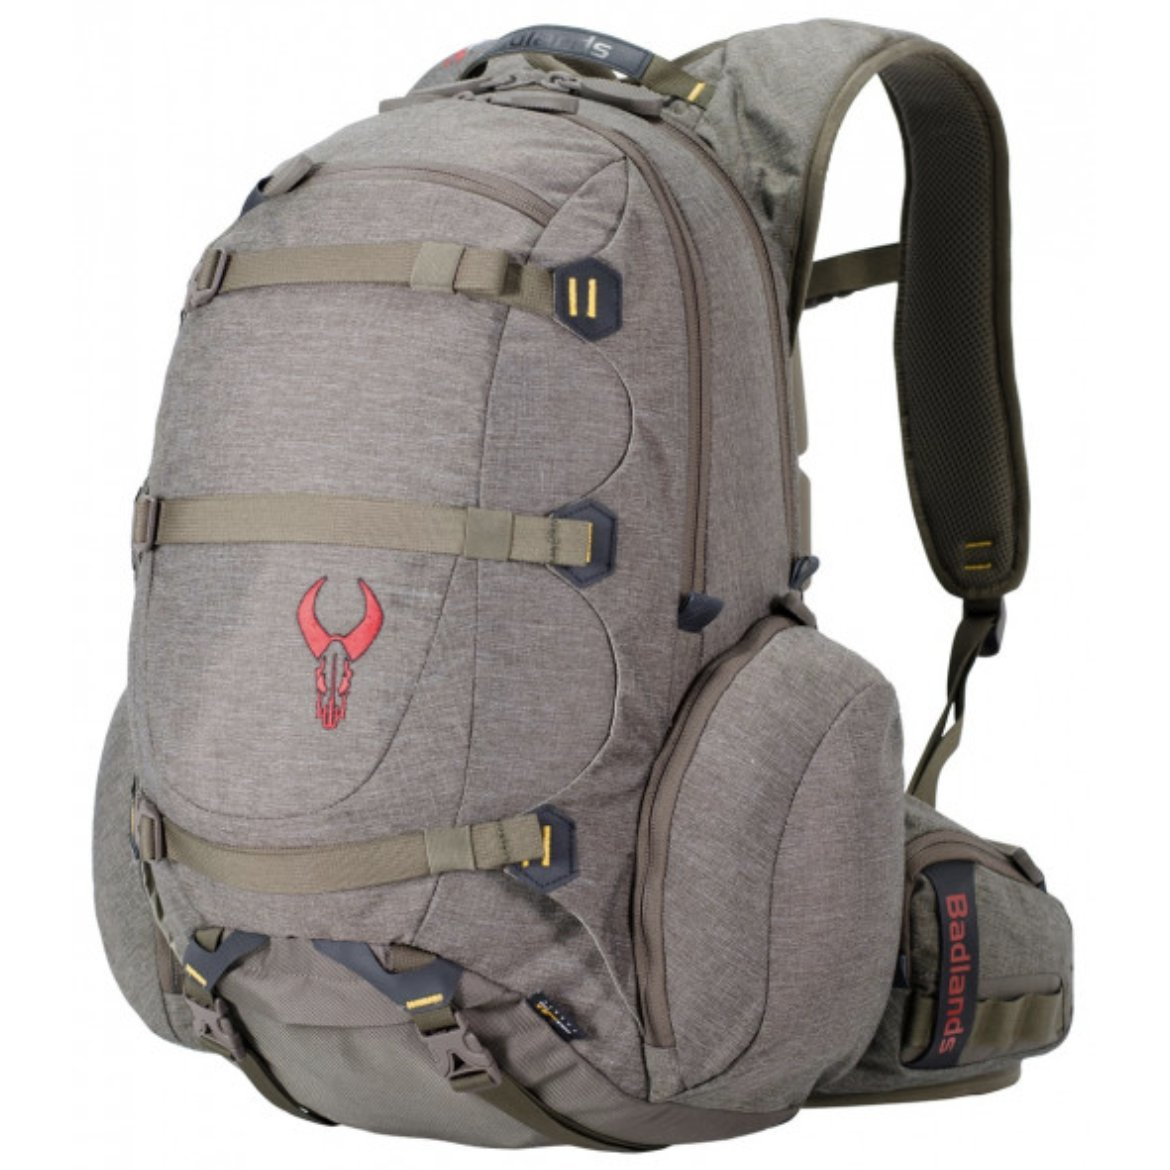 Badlands Superday Hunting Backpack - Bow, Rifle, and Pistol Compatible, Solid